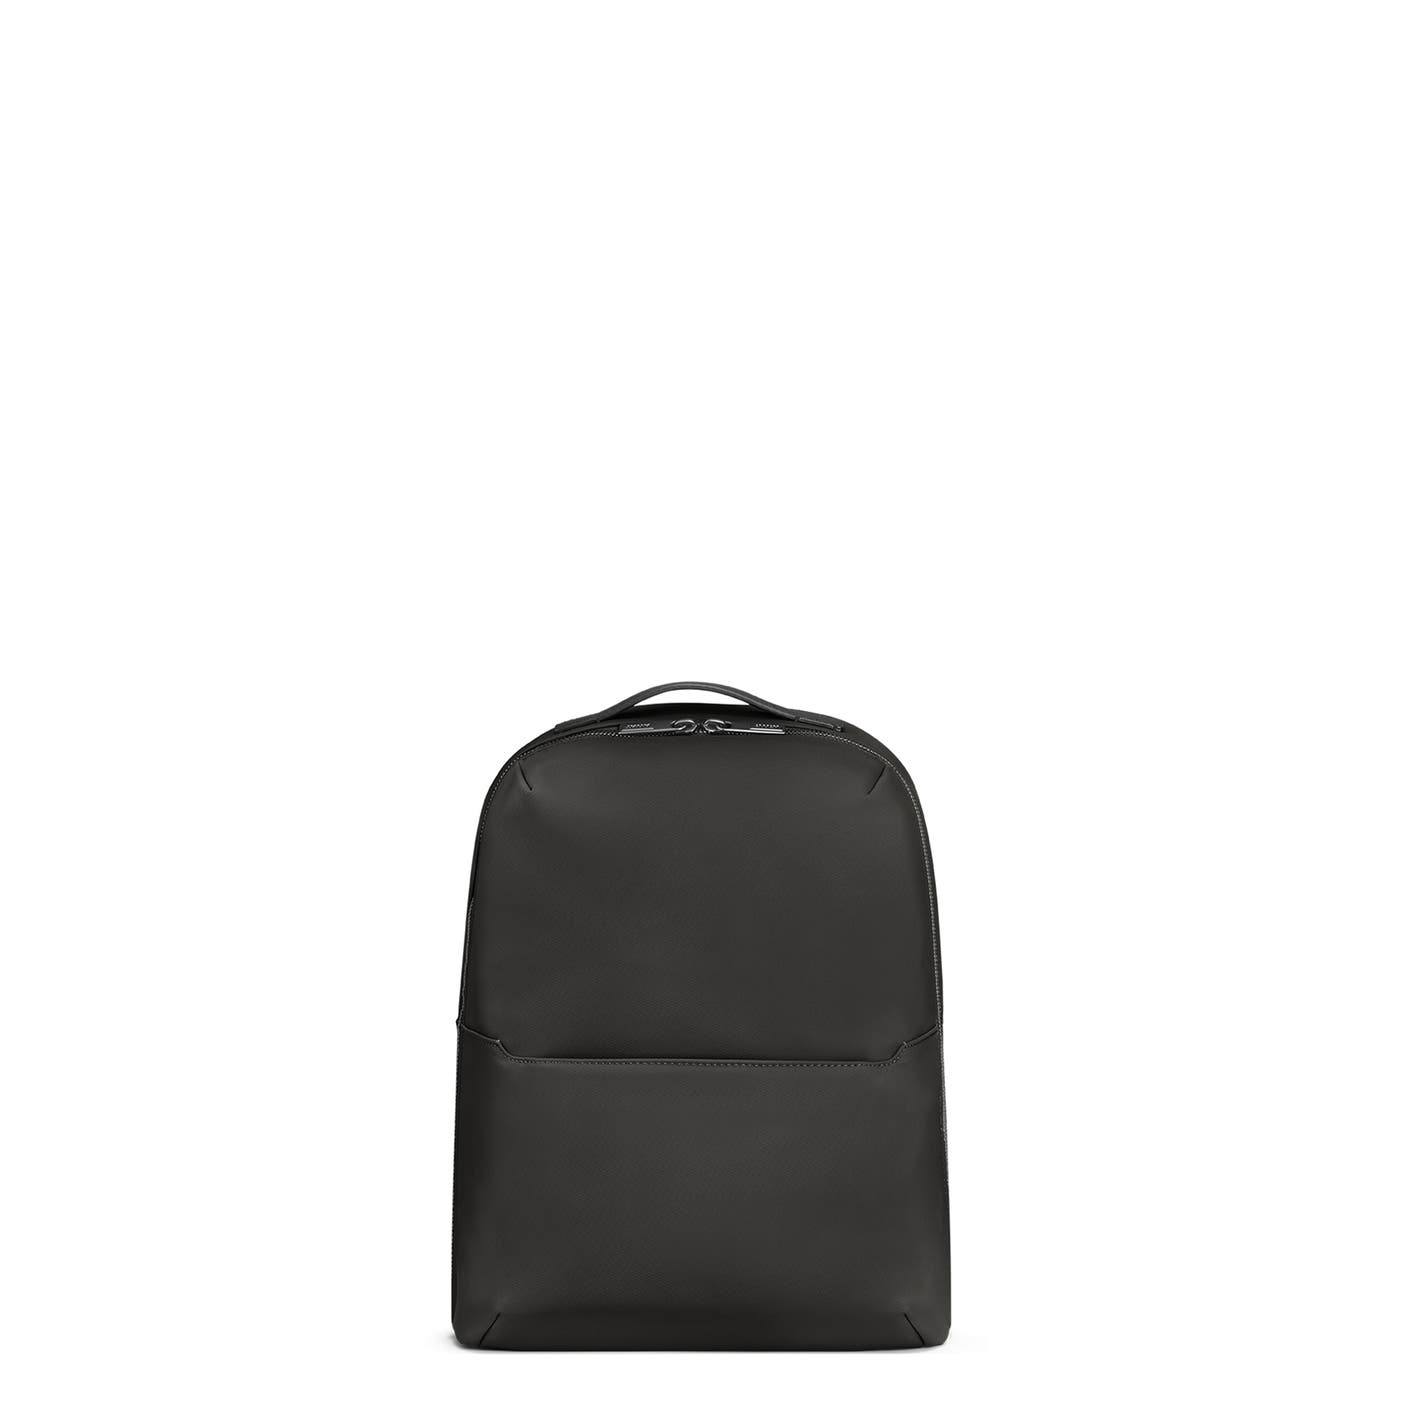 The Small Zip Backpack